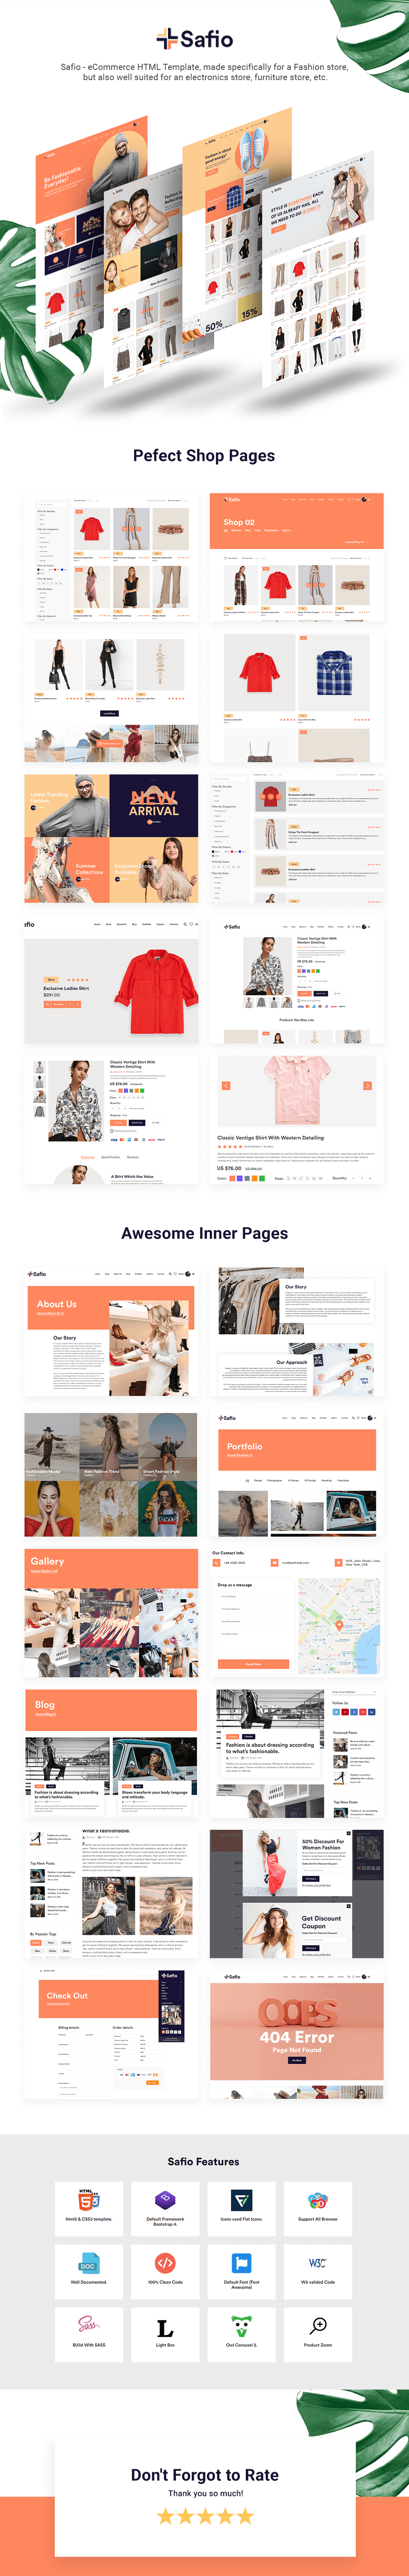 Safio - ECommerce & Online Businesses HTML5 Template - 1